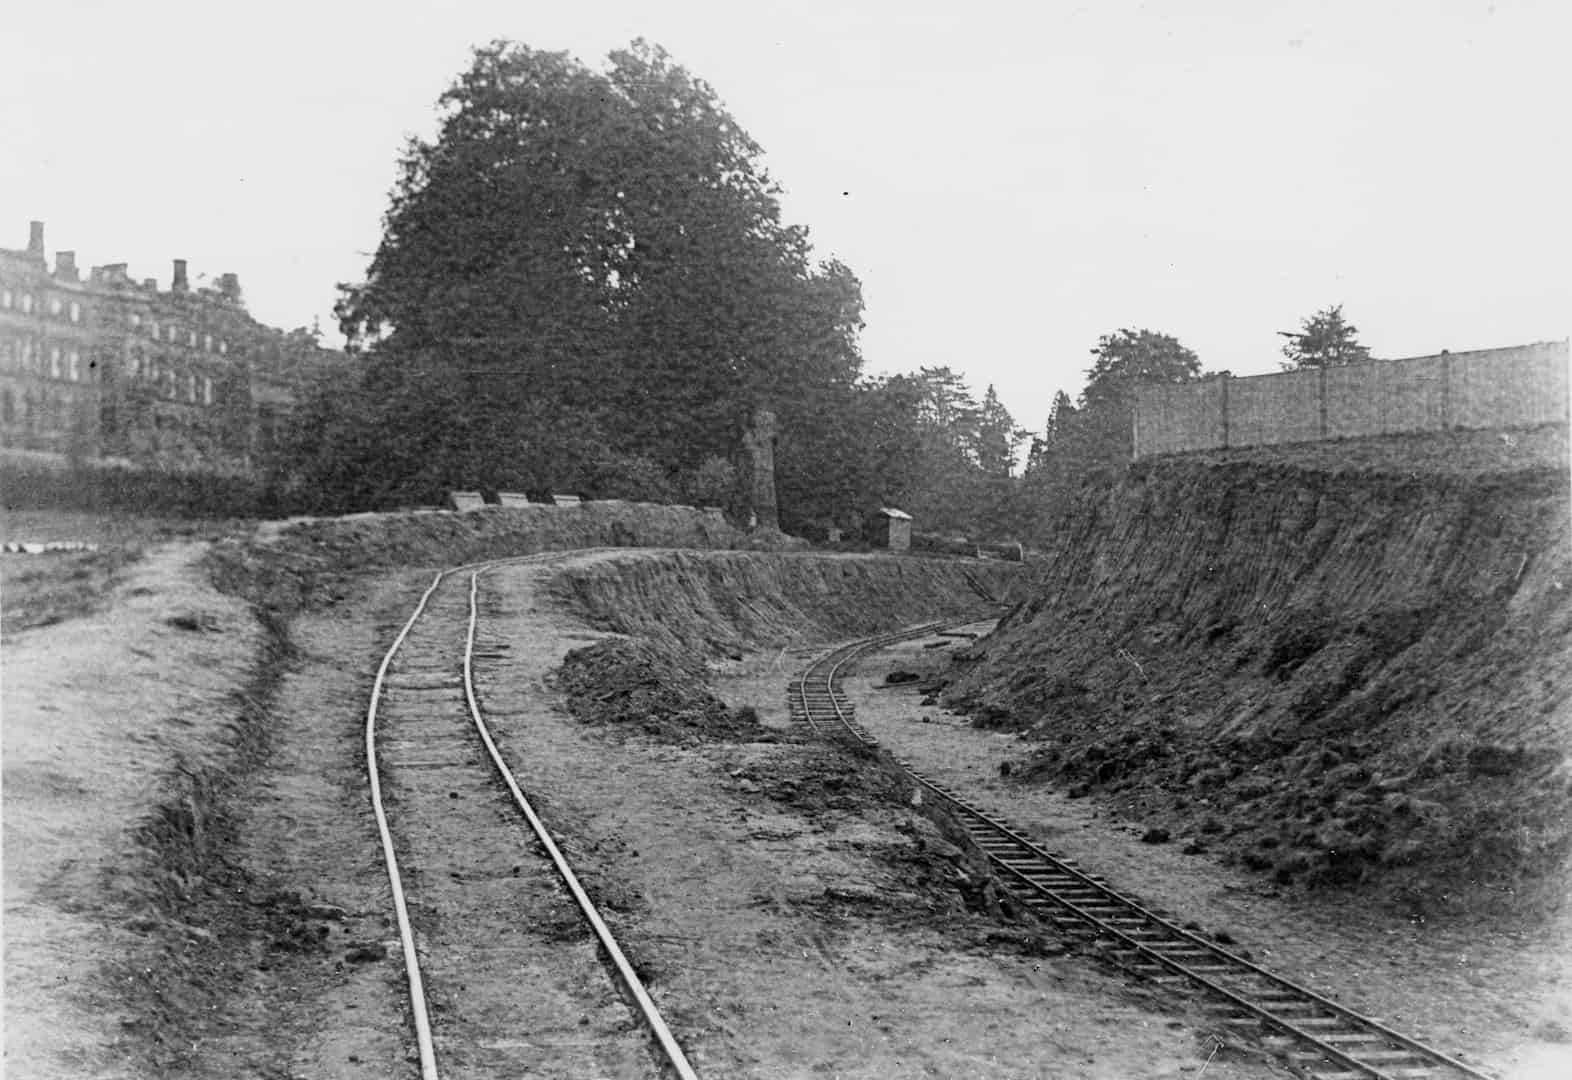 Building the Dorking Bypass (A24) in 1934